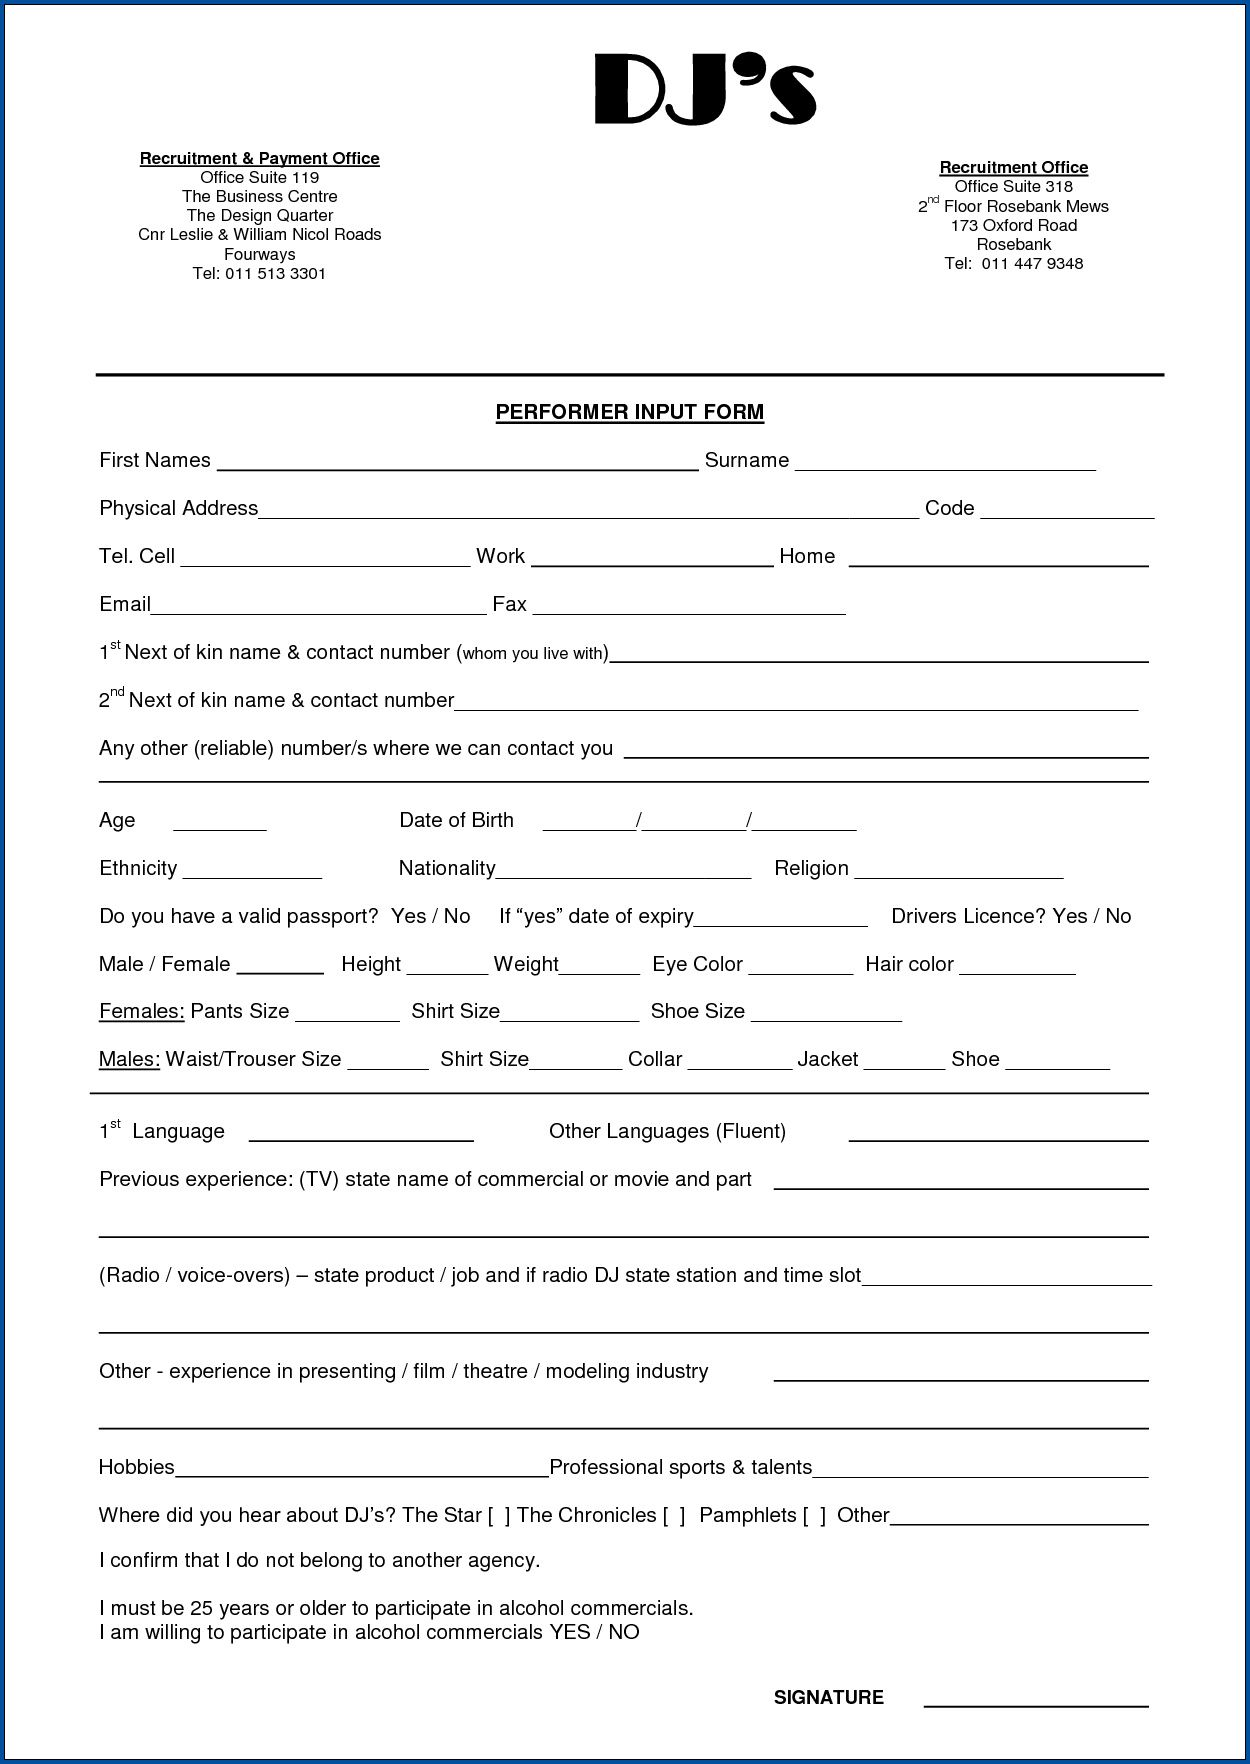 008 Magnificent Disc Jockey Contract Template Idea  Disk FreeFull